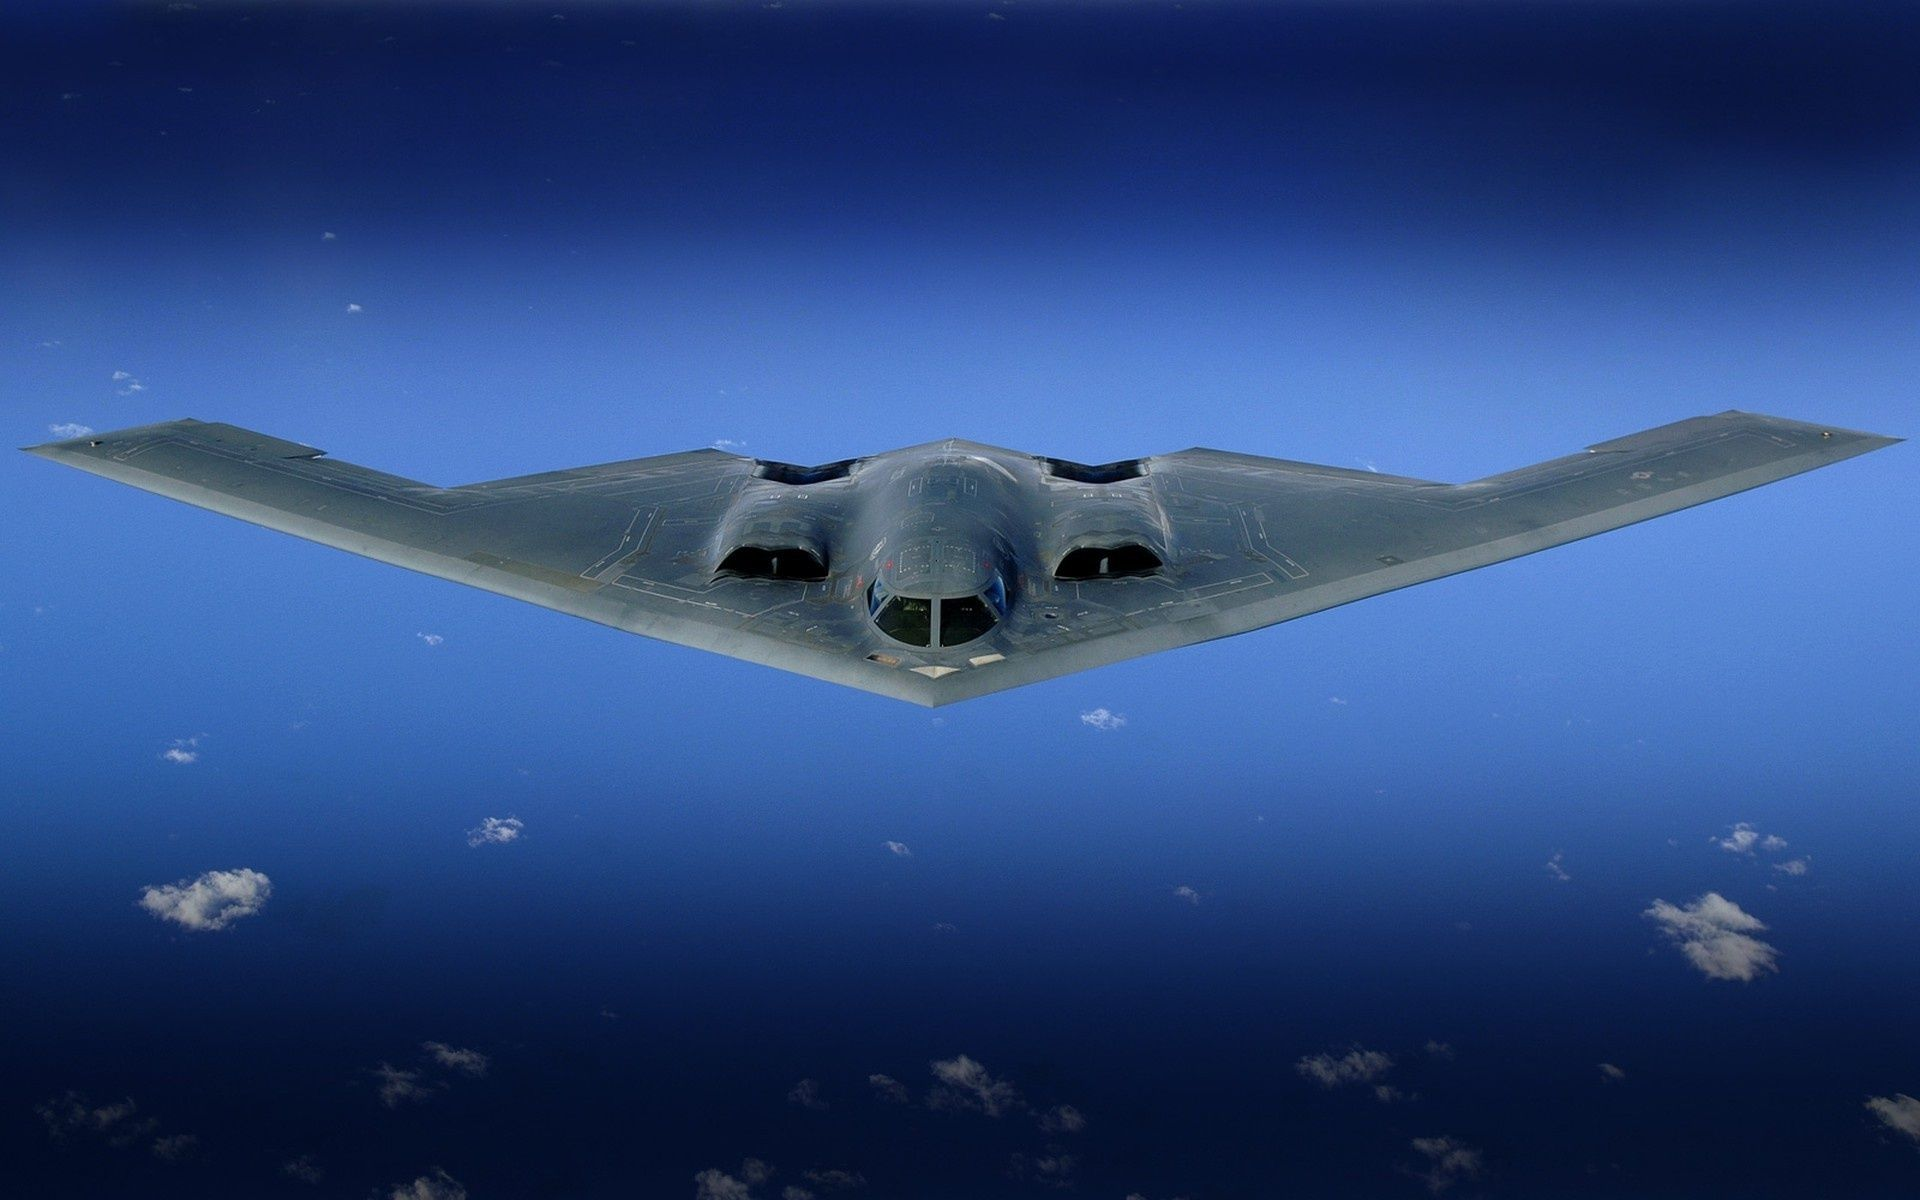 B2 Bomber in the Sky wallpaper